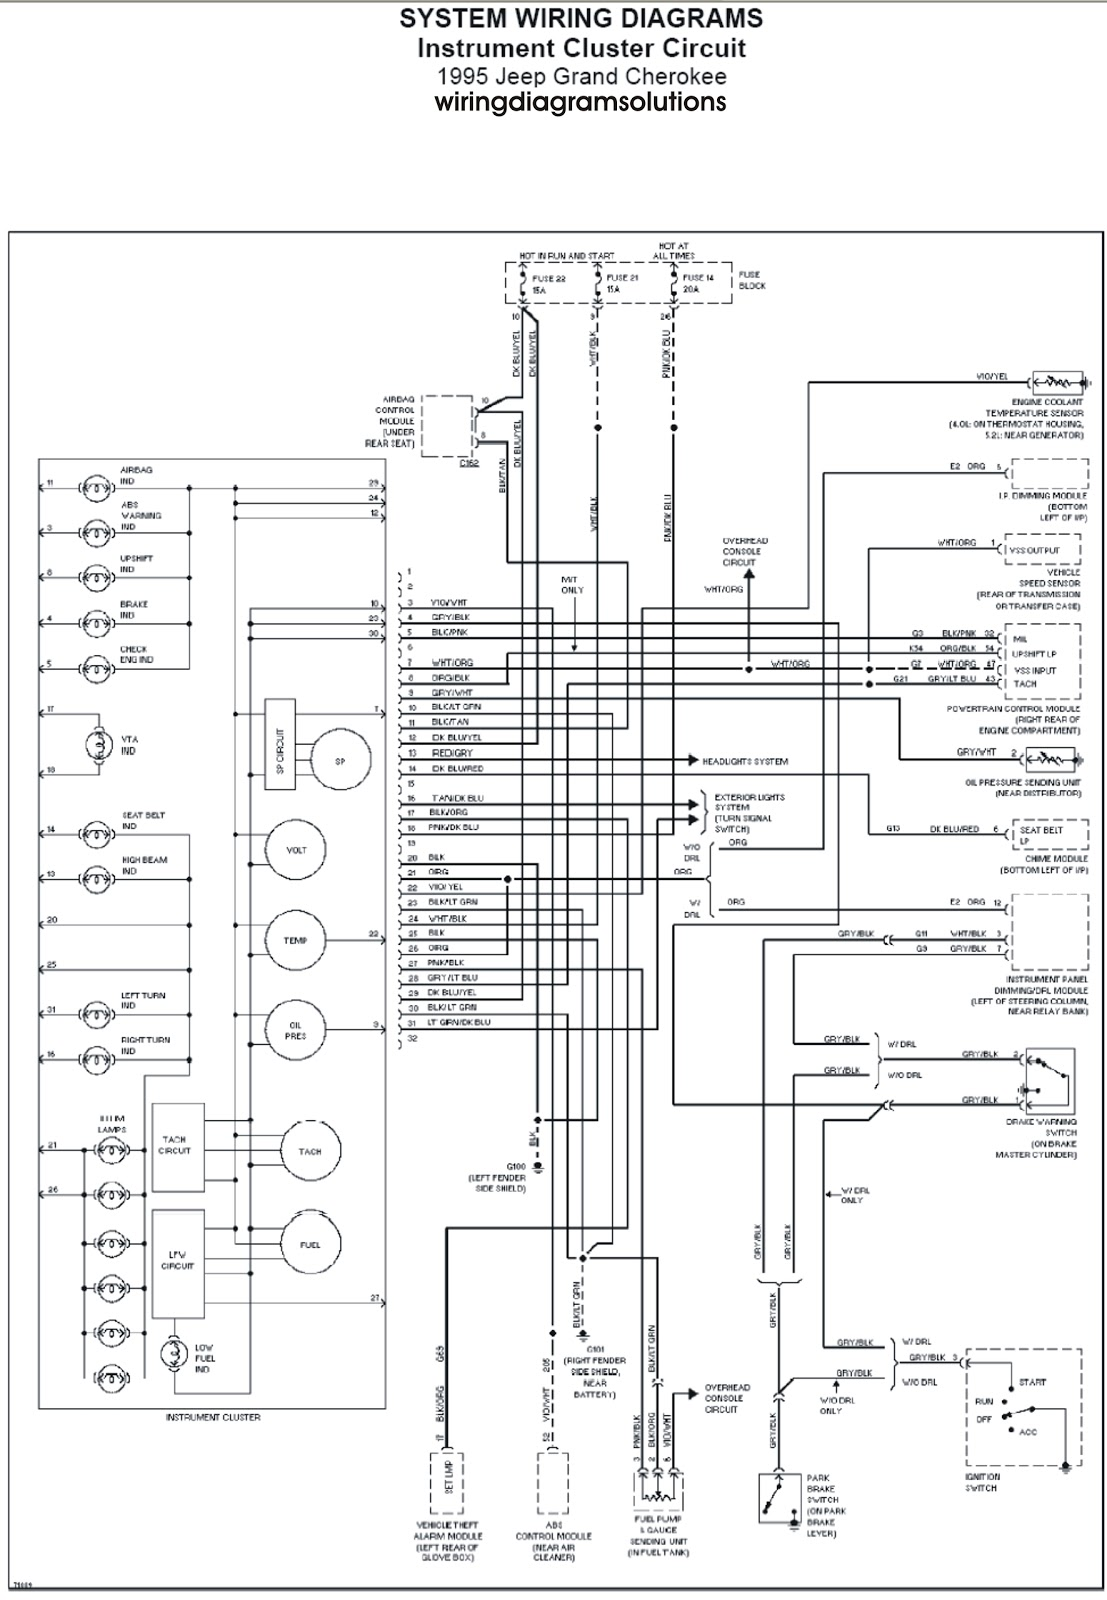 1994 jeep wrangler headlight wiring diagram with 2011 05 01 Archive on Jeep Liberty Tailgate Wiring Harness Diagram Wiring Diagrams also 1964 Mustang Wiring Diagrams additionally 93 Chevy 2500 Reverse Lights Wiring Diagram together with 1052313 Steering Column Wiring Colors as well Discussion T15900 ds579881.